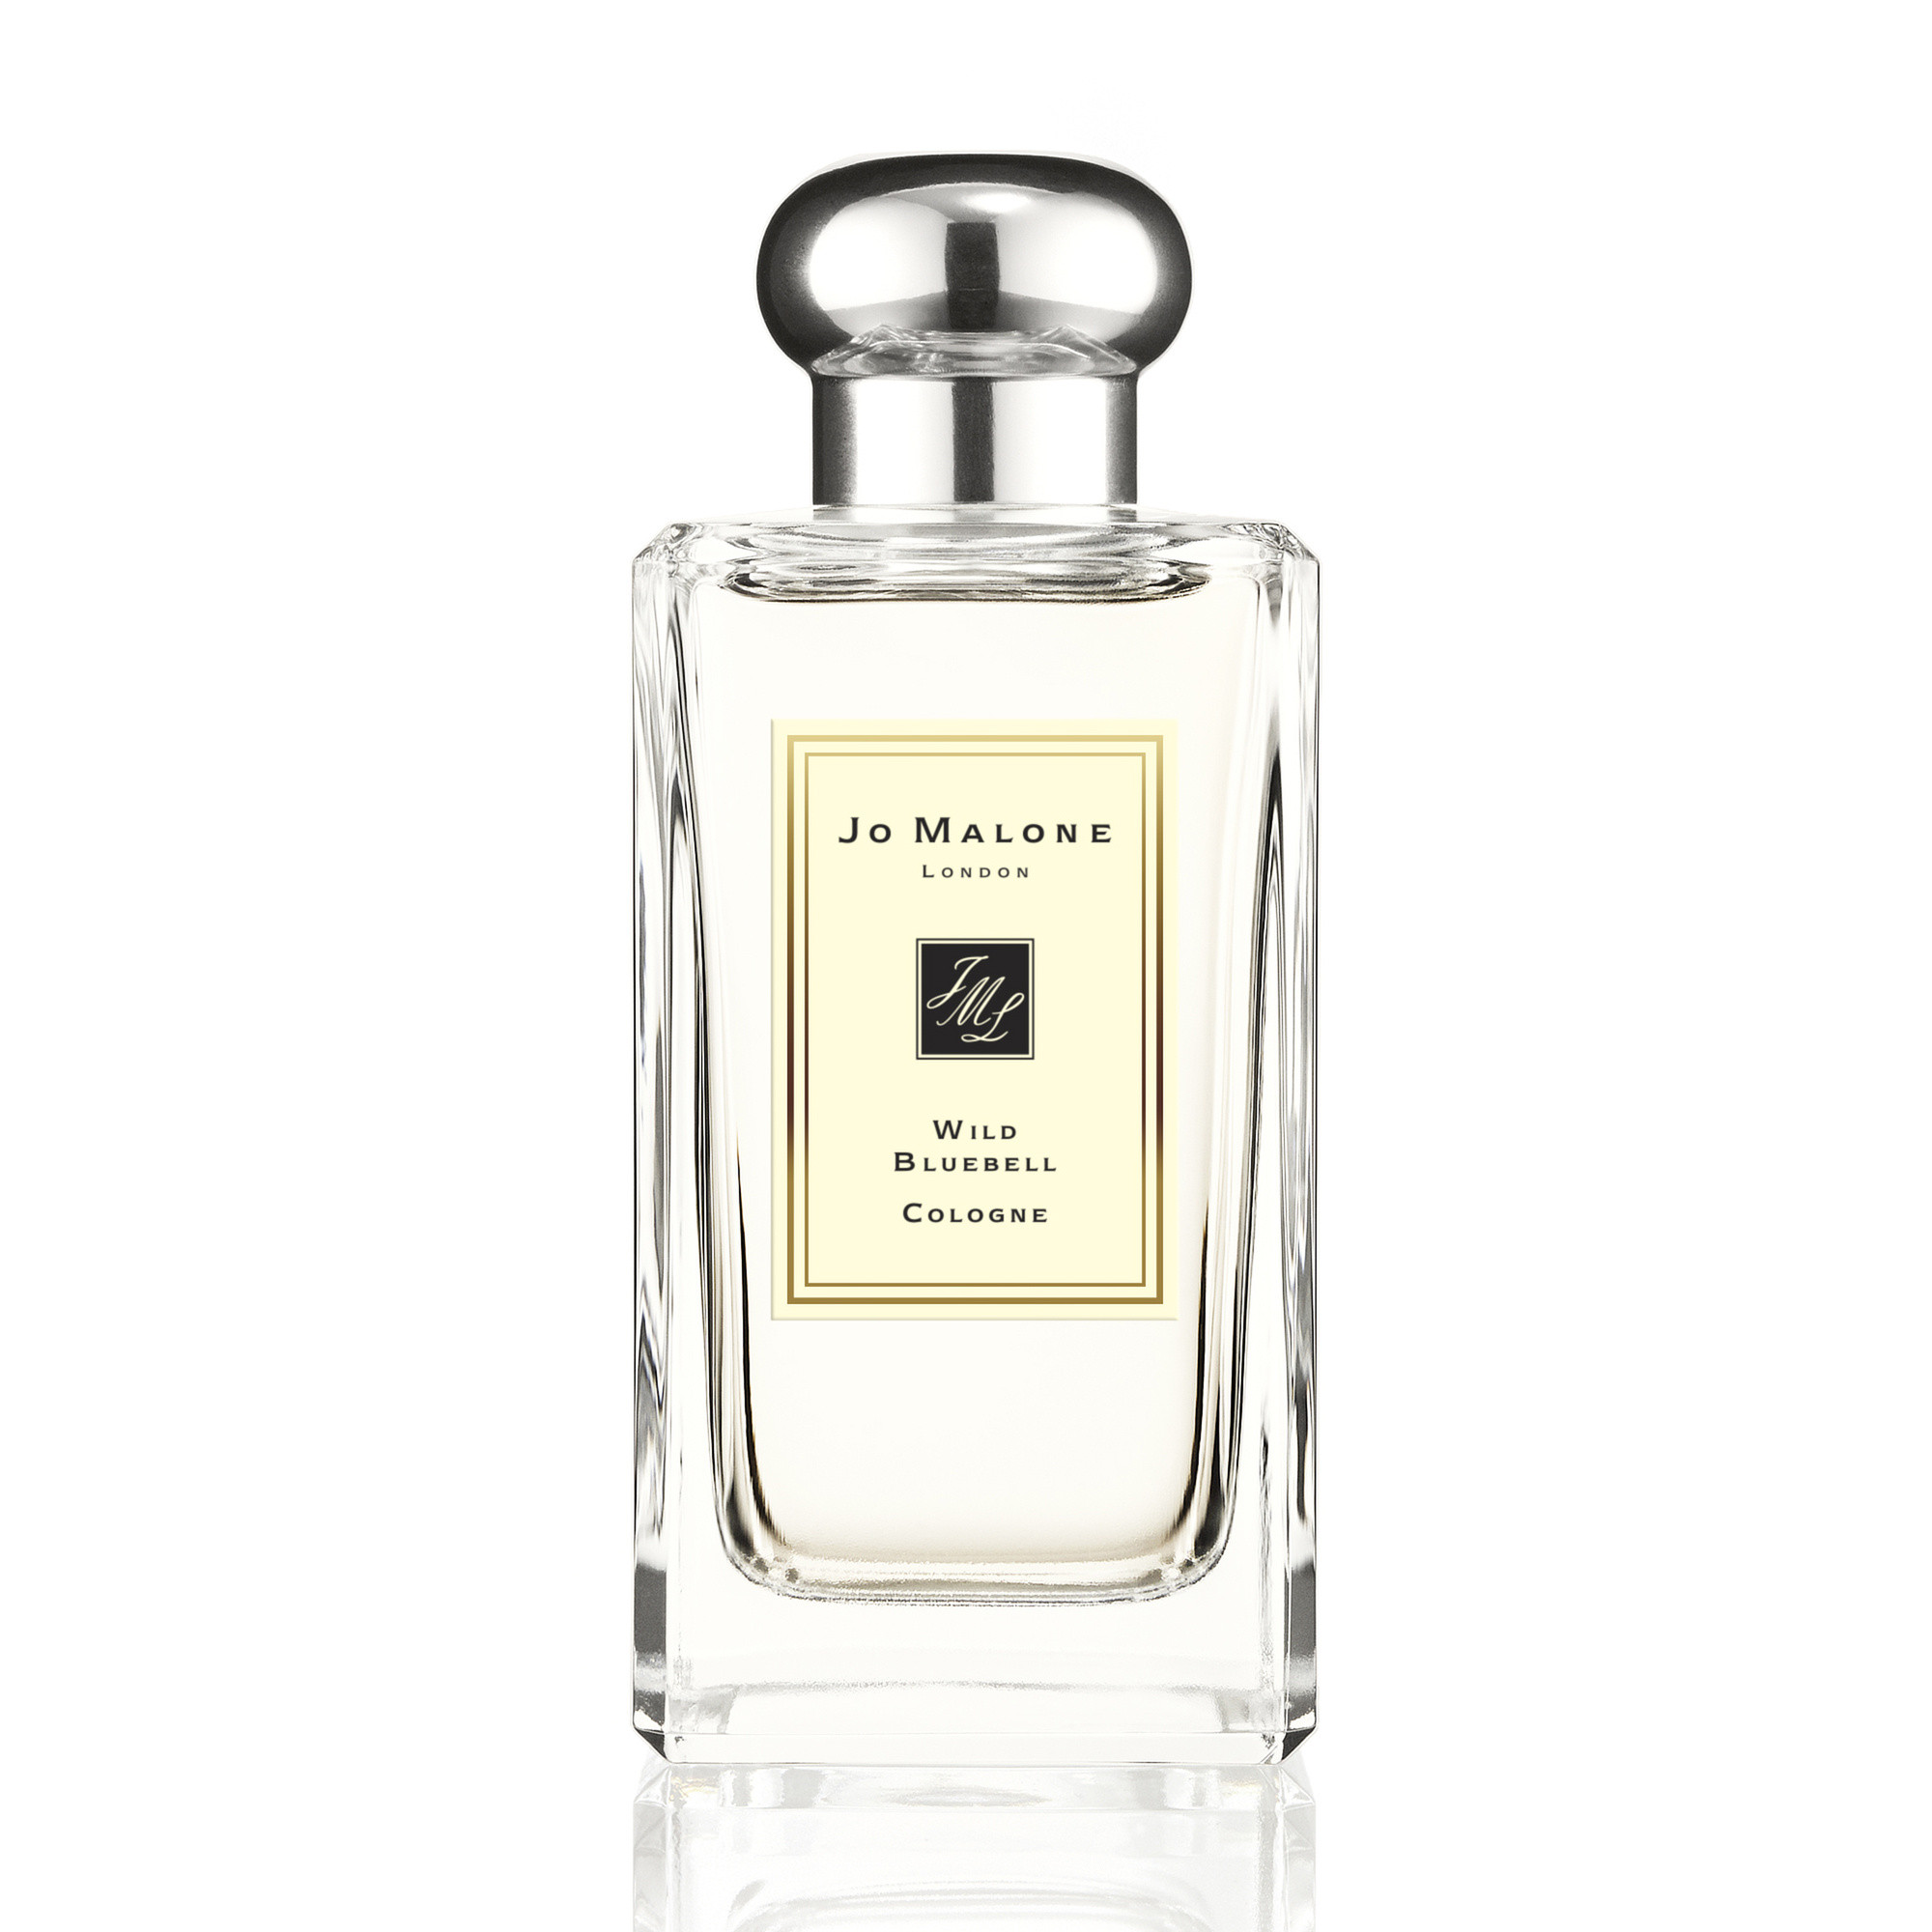 Jo Malone London wild bluebell cologne 100 ml, Beige, large image number 0